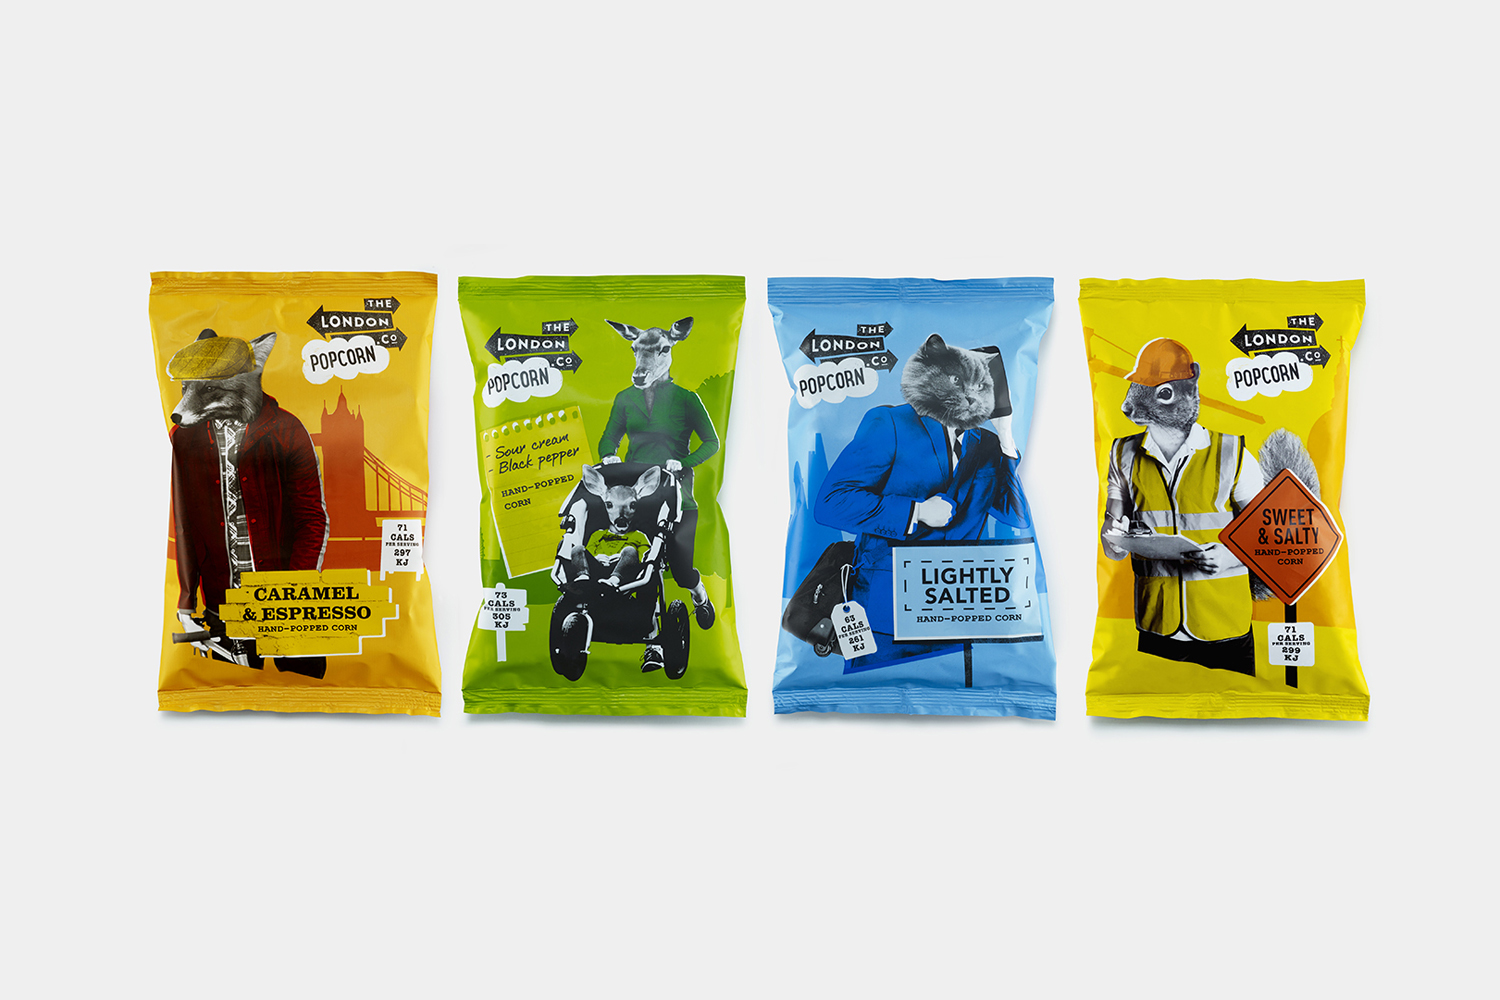 New packaging that mixes photography and illustration designed by UK based B&B Studio for The London Popcorn Co.